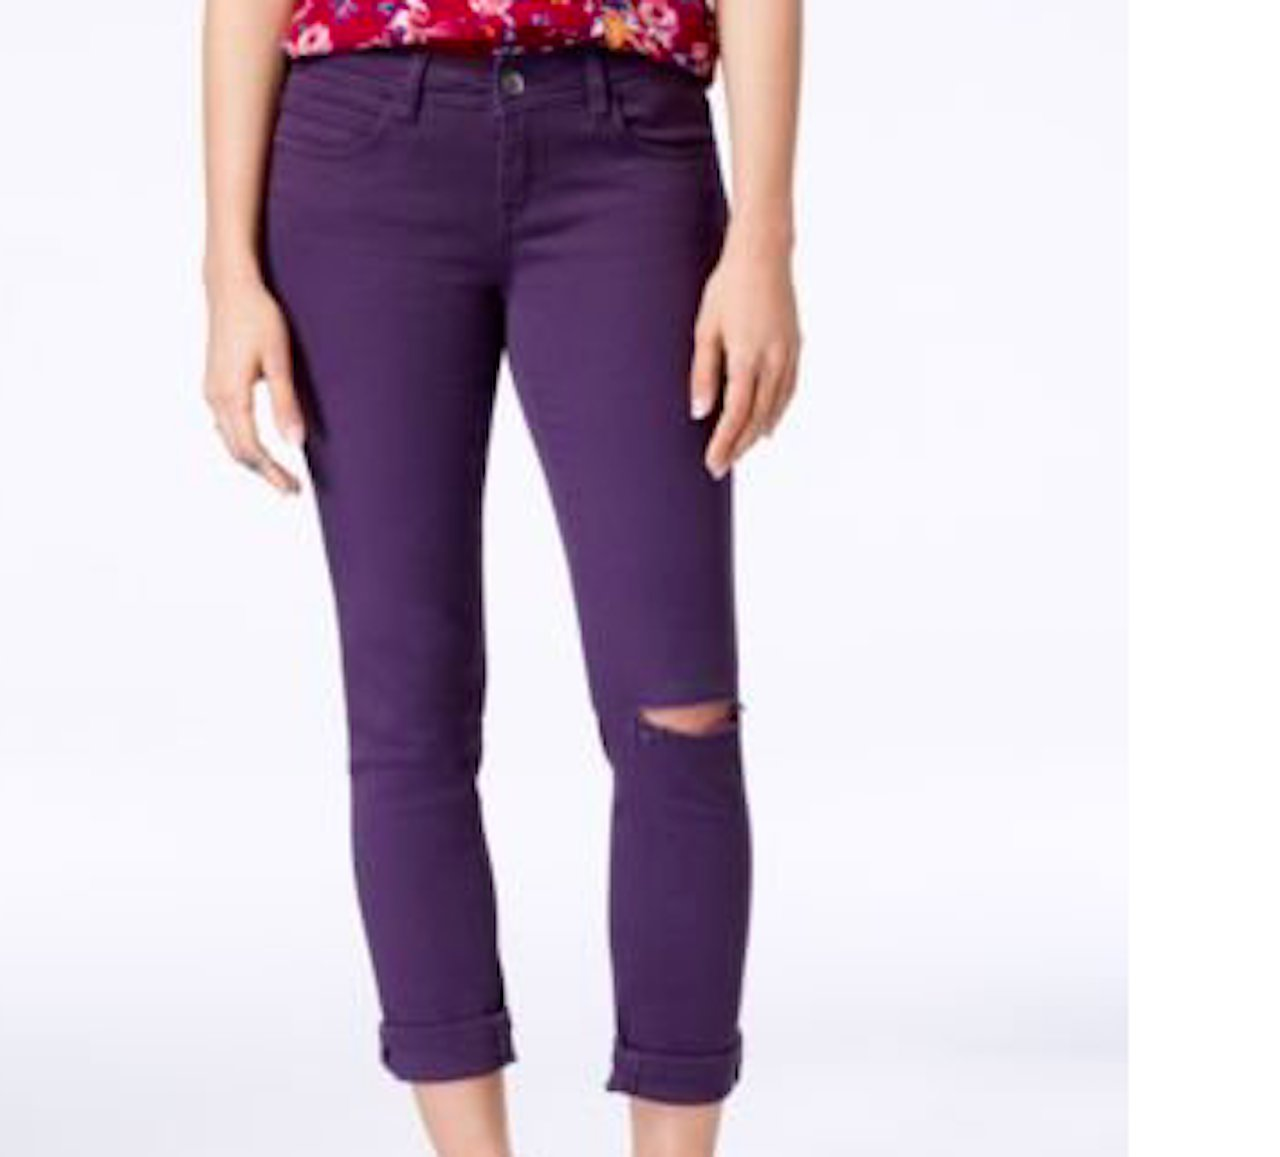 Dollhouse Women's Colored Ripped Cropped Jeans, Purple, Size 7